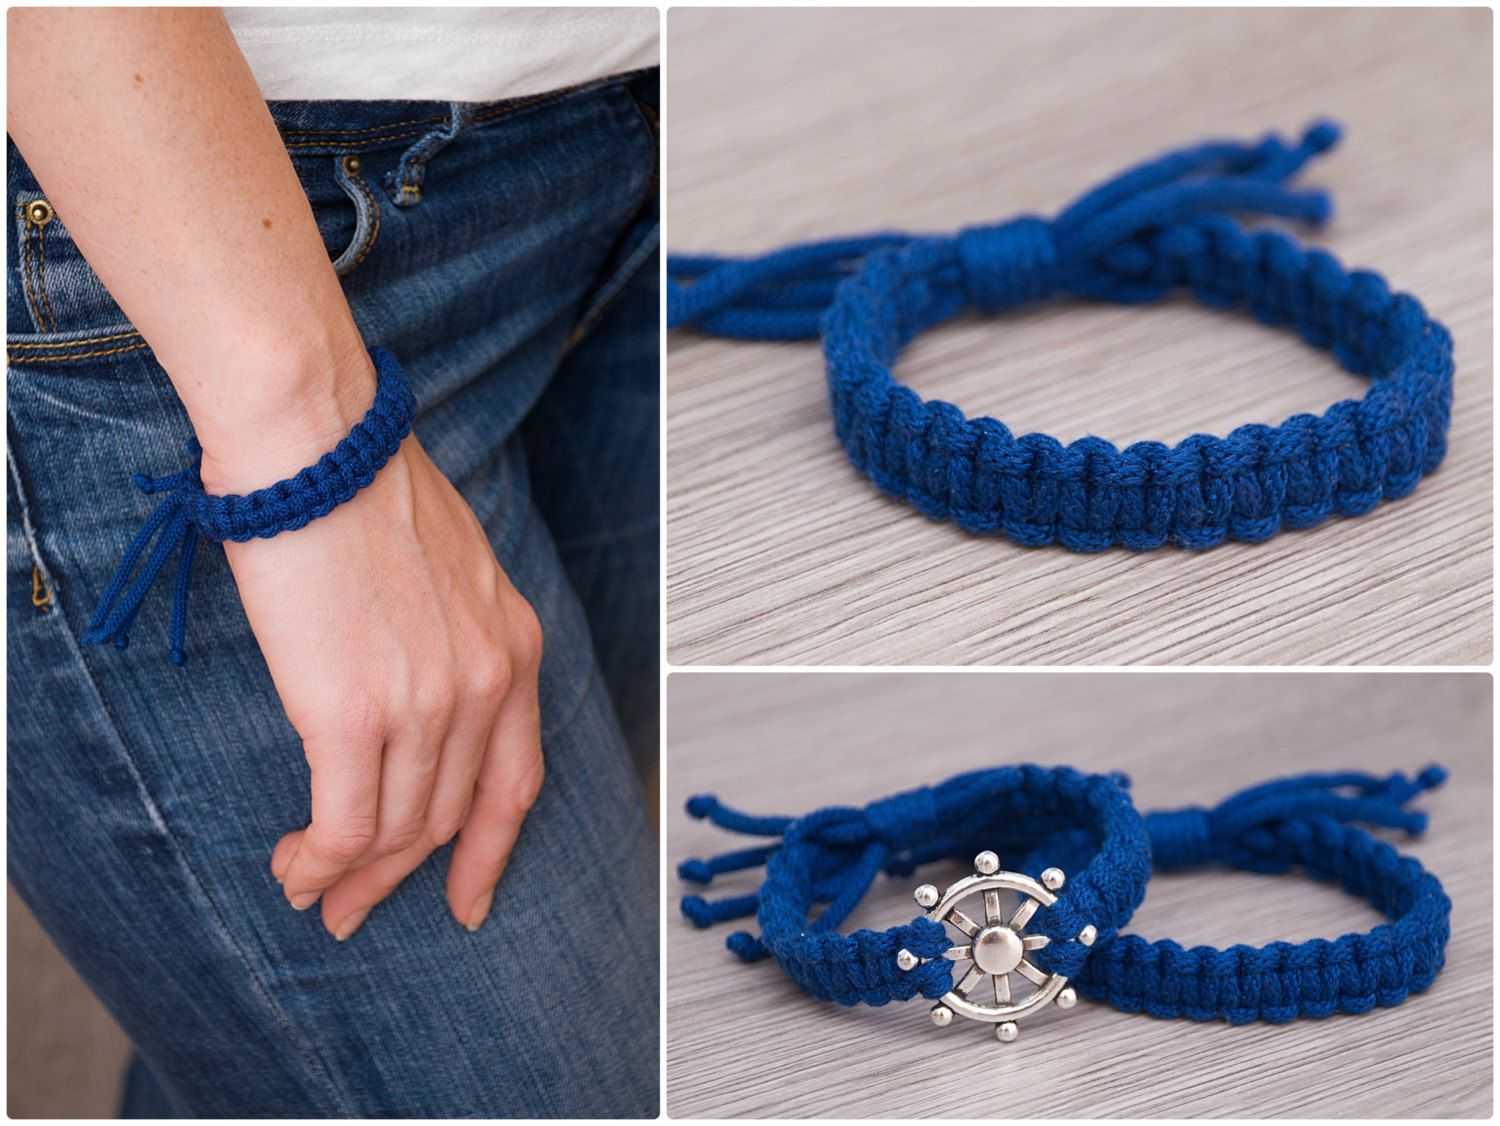 Blue braided adjustable bracelet Friendship cotton knitted bracelet Macrame bracelet Christmas gift Eco-friendly rope bracelet friendship bracelet adjustable bracelet Macrame bracelet Cotton knit bracelet Christmas gift Eco friendly rope bracelet Minimalist Bracelet natural bracelet colorful bracelet simple bracelets stackable bracelets blue bracelet 9.00 USD #goriani